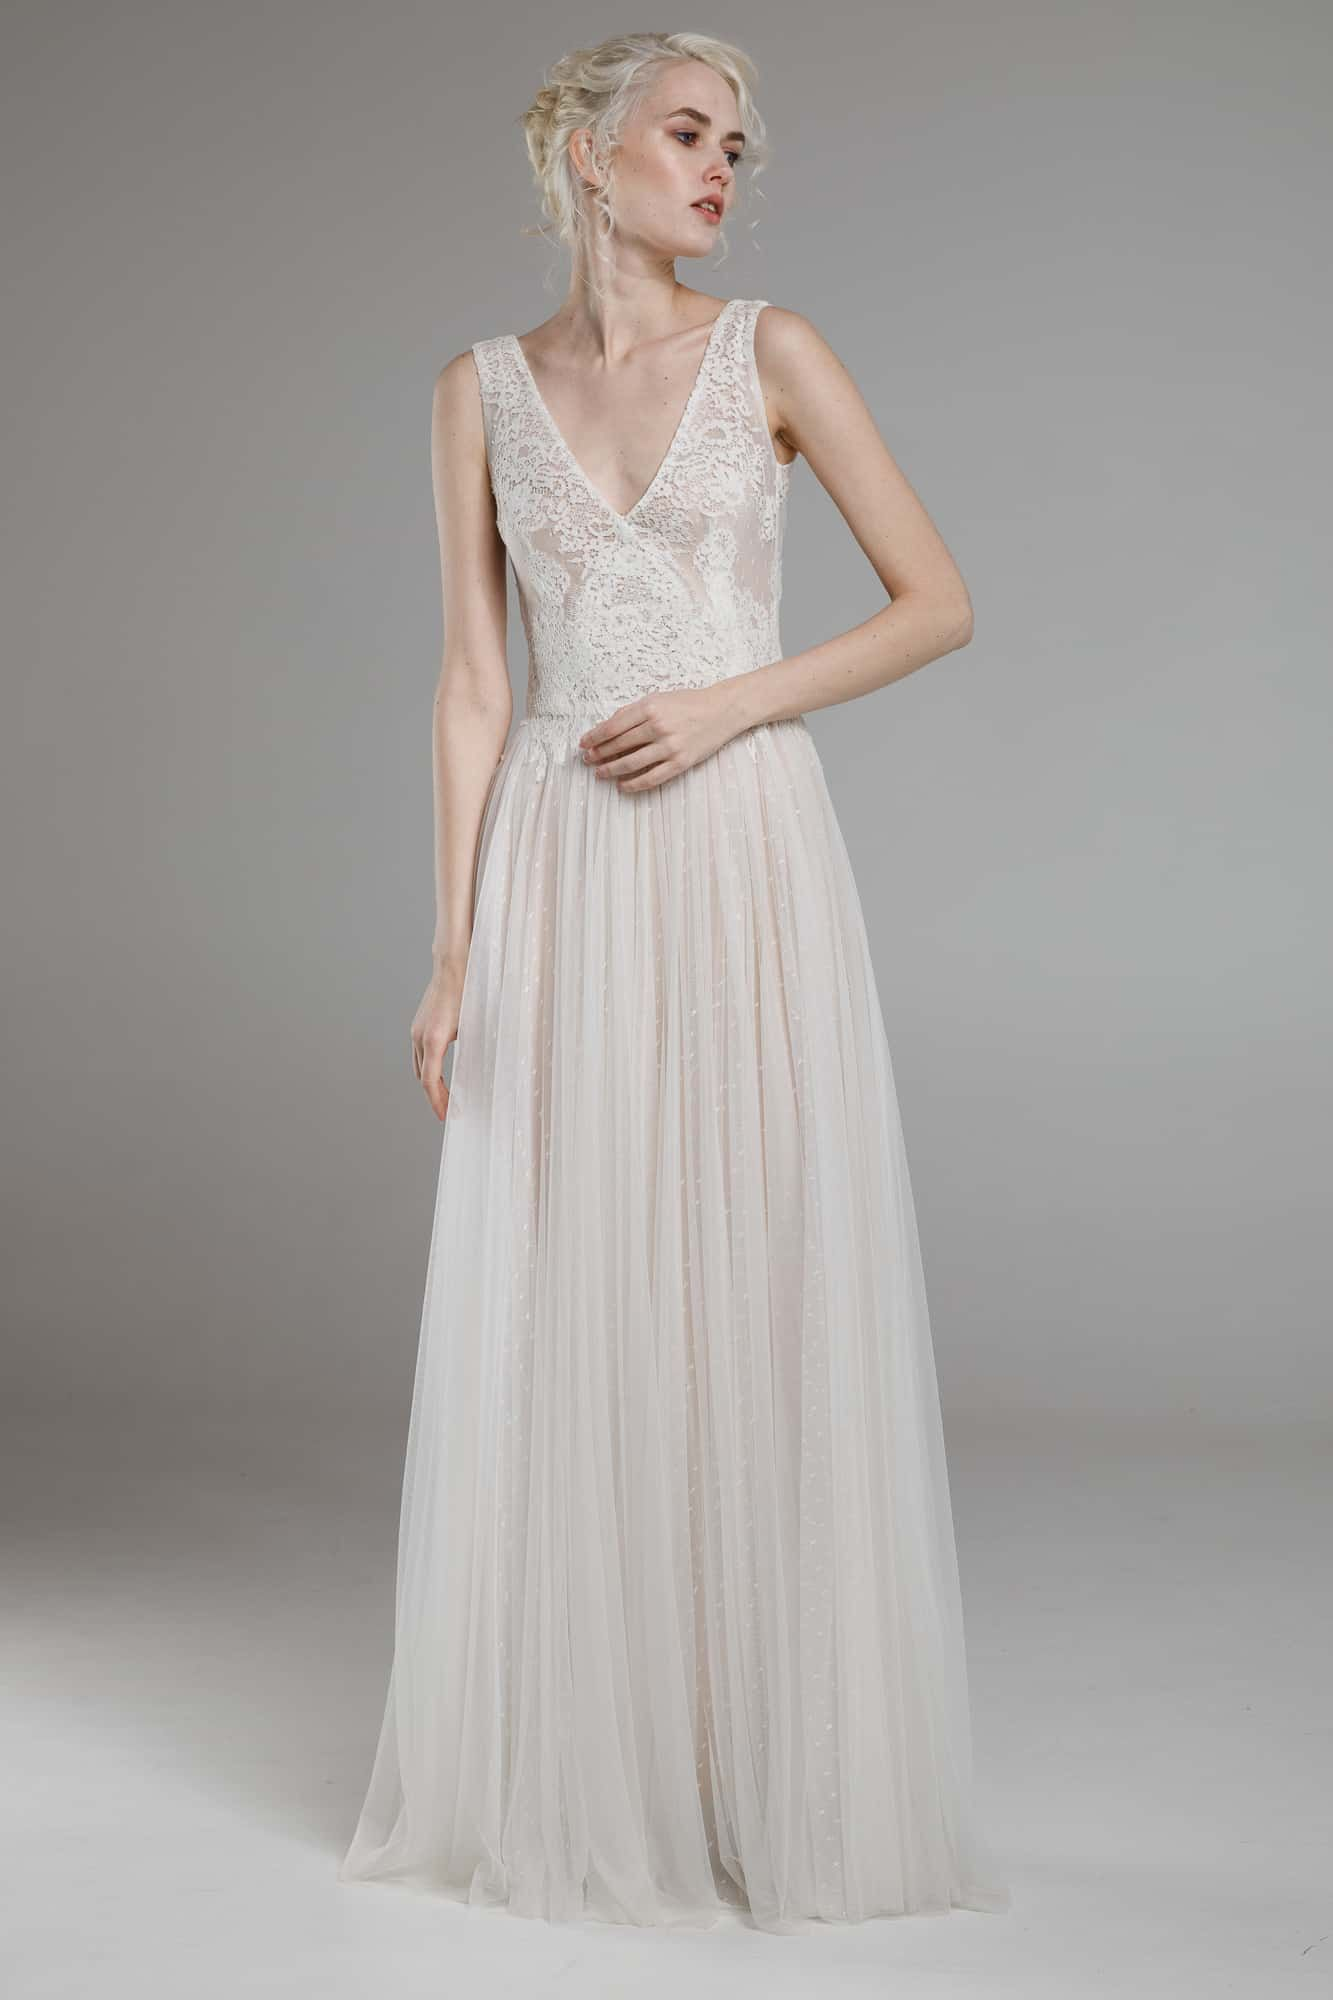 Boho vintage wedding dress romantic chic available in 6